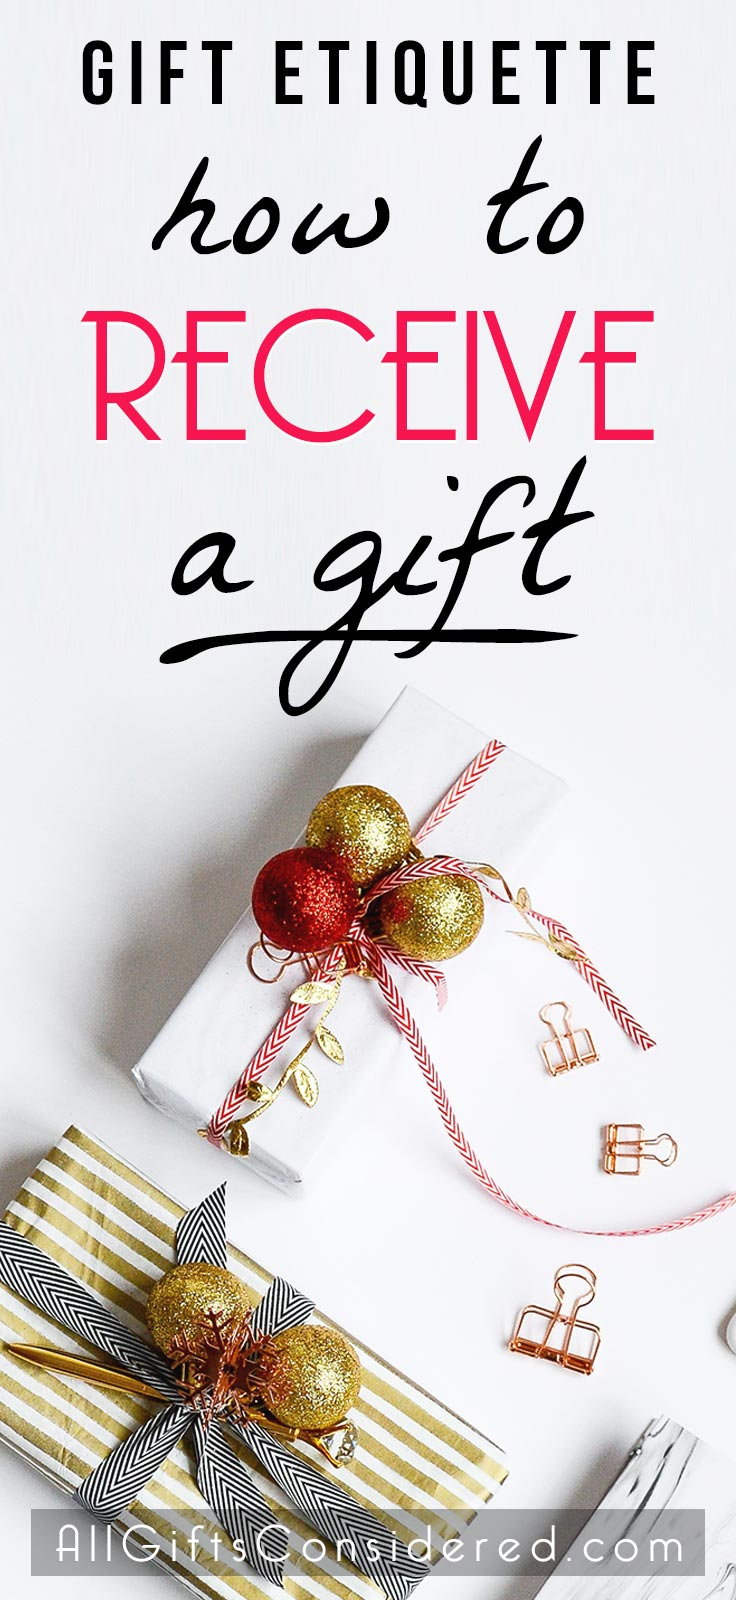 Gift etiquette for receiving a gift